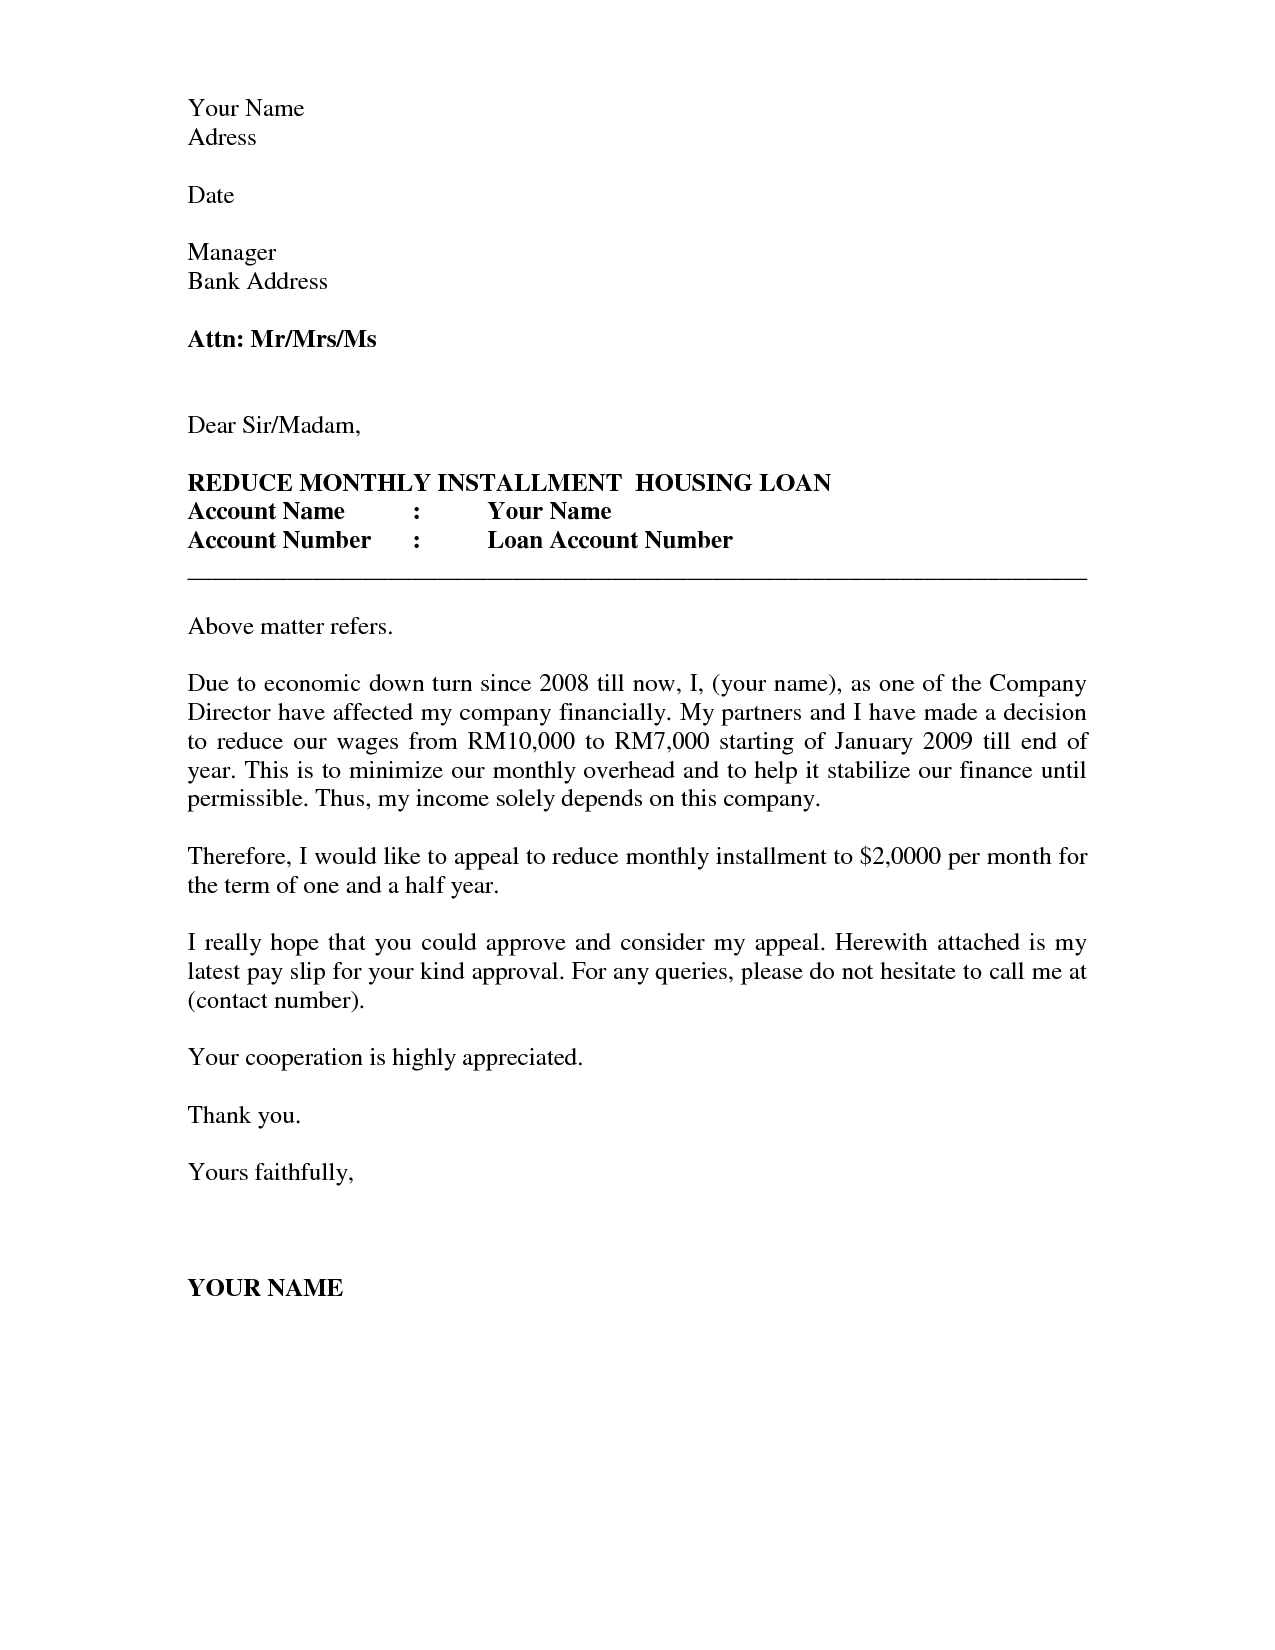 Business appeal letter a letter of appeal should be written in a business appeal letter a letter of appeal should be written in a professional business letter format thecheapjerseys Image collections